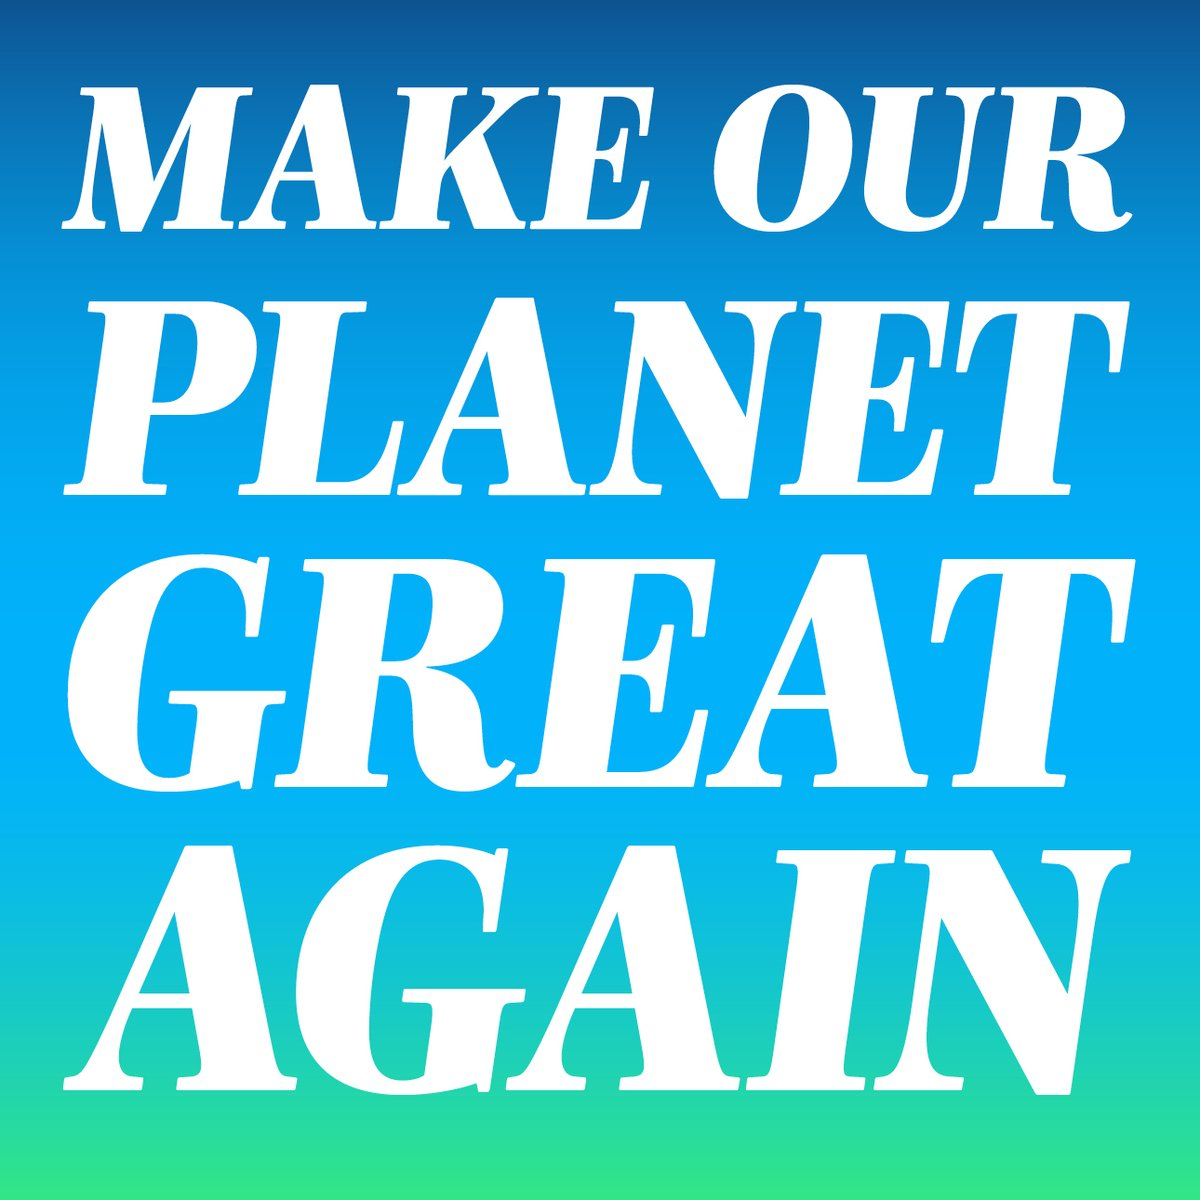 https://i0.wp.com/noticieros.televisa.com/wp-content/uploads/2017/06/make-our-planet-great-again-devolvamos-la-grandeza-a-nuestro-planeta-twitter-emmanuelmacron.jpg